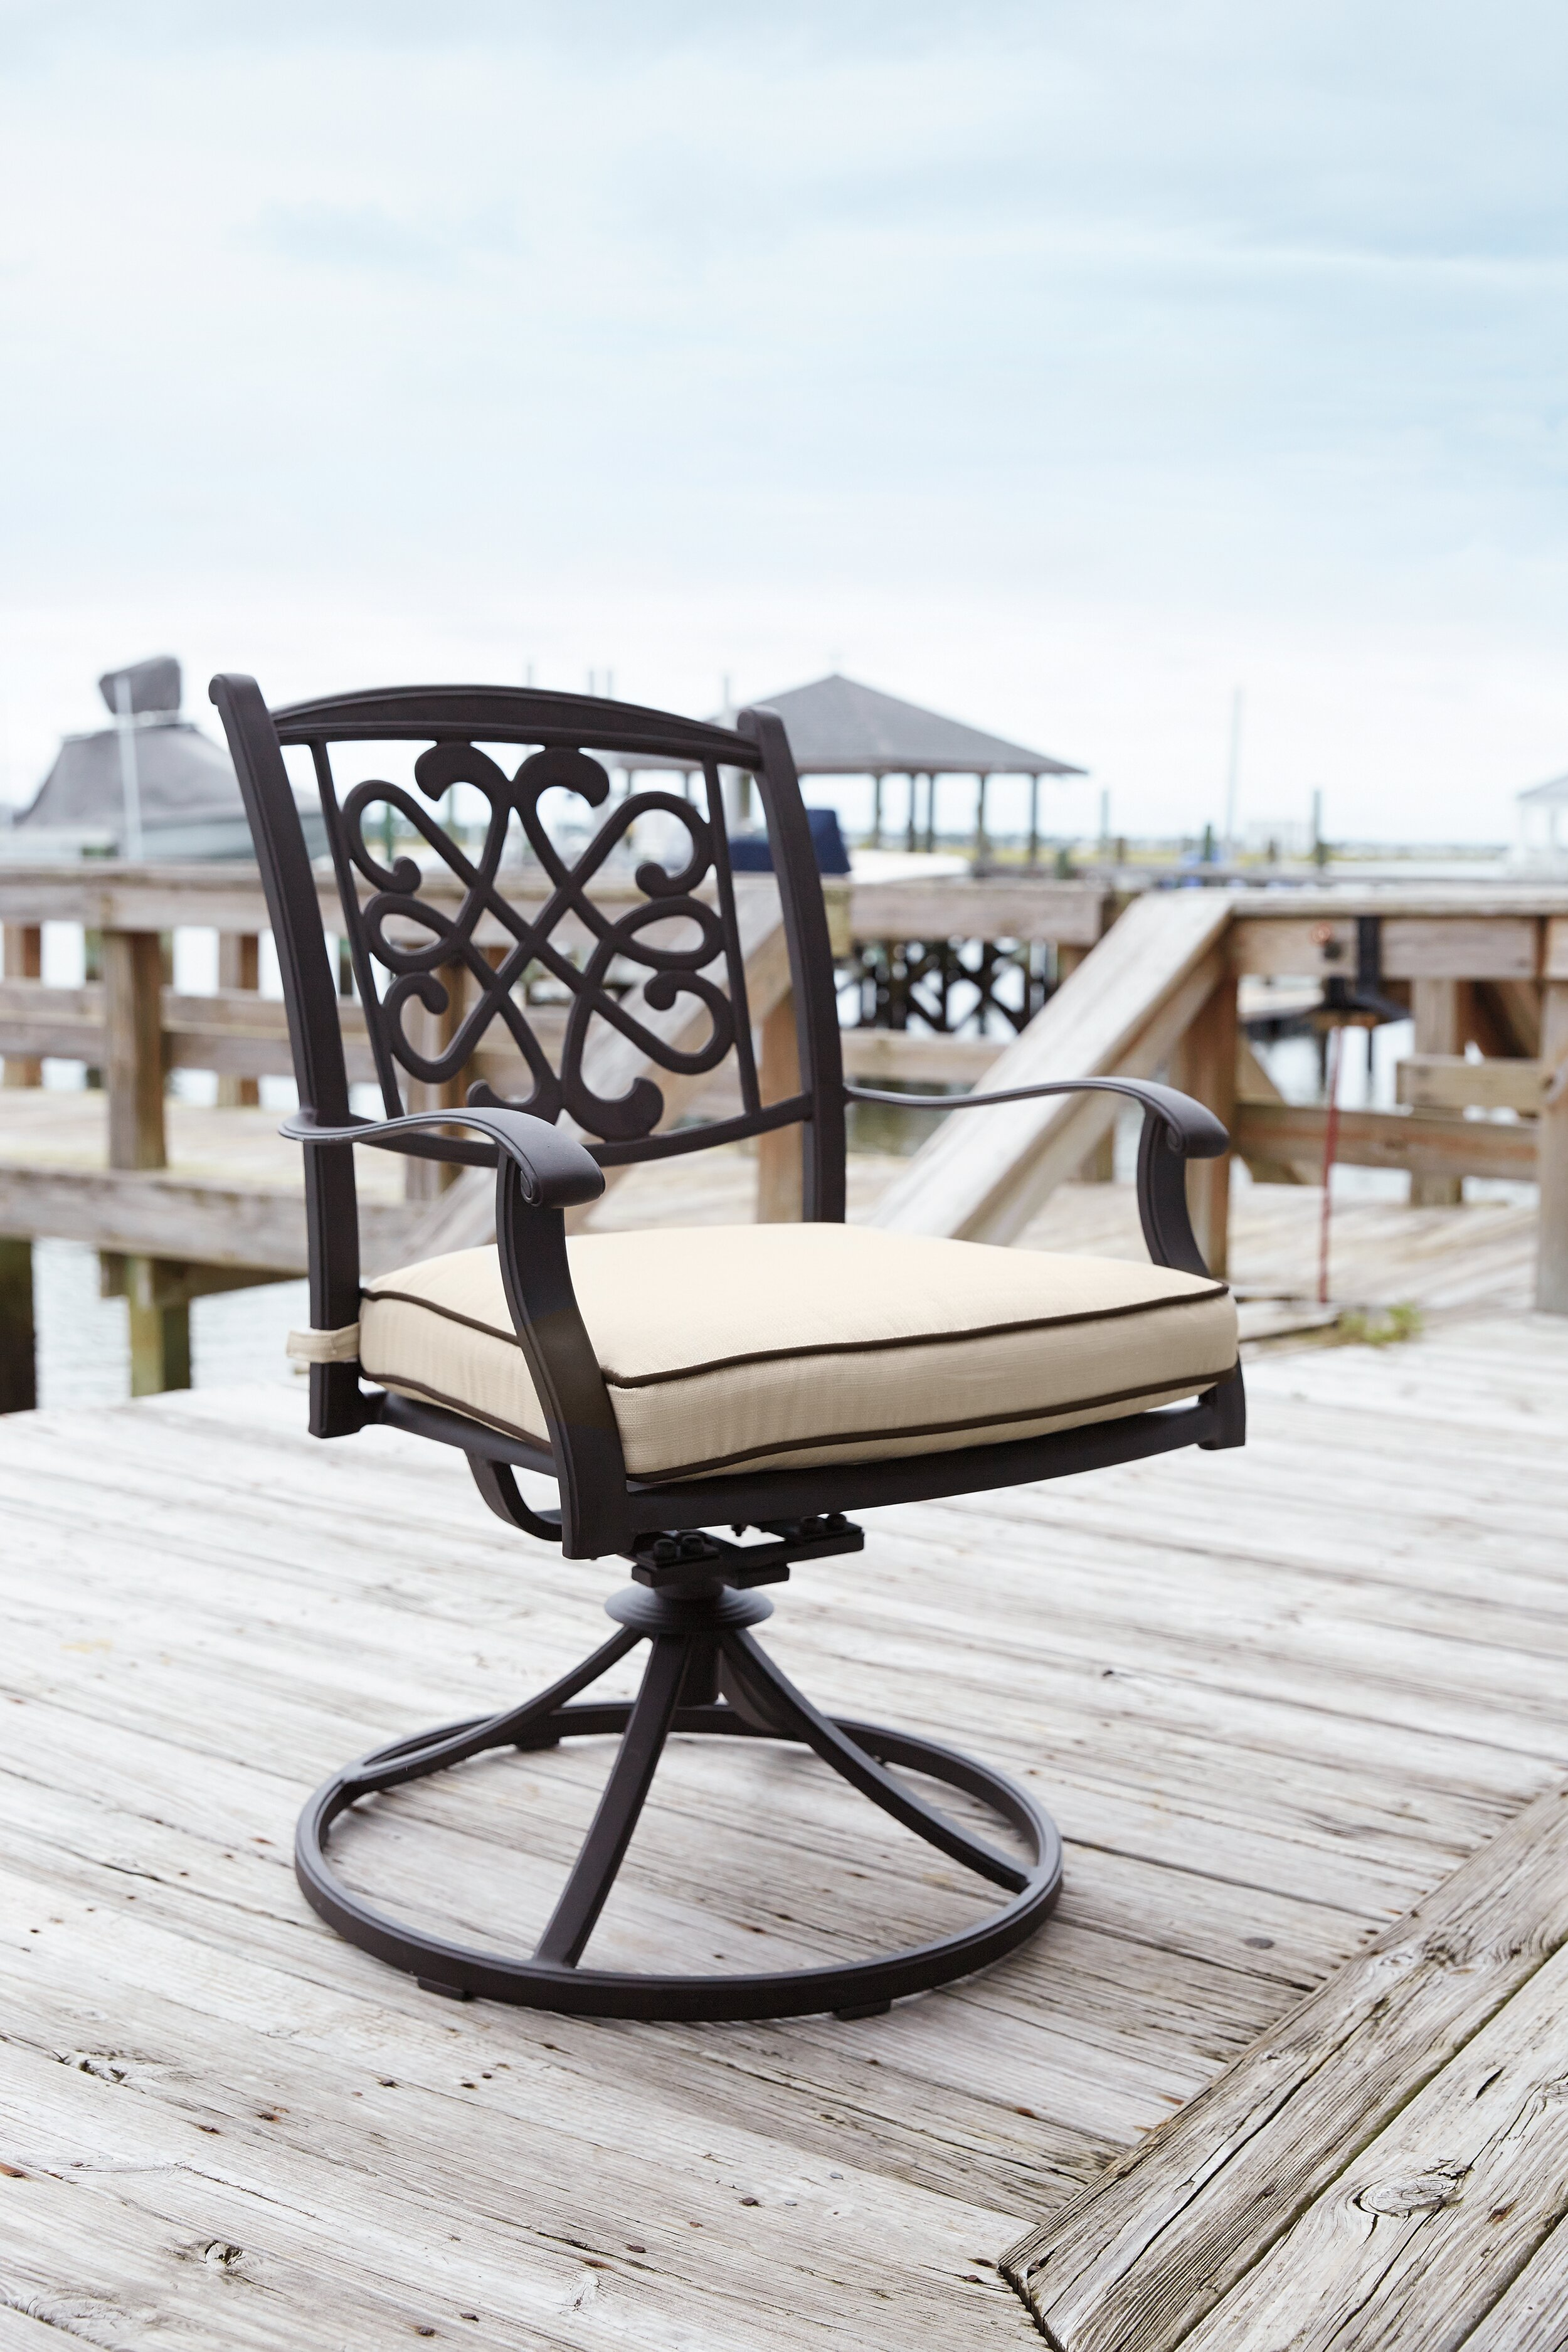 Darby Home Co Hanson Swivel Rocker Patio Dining Chair with Cushion